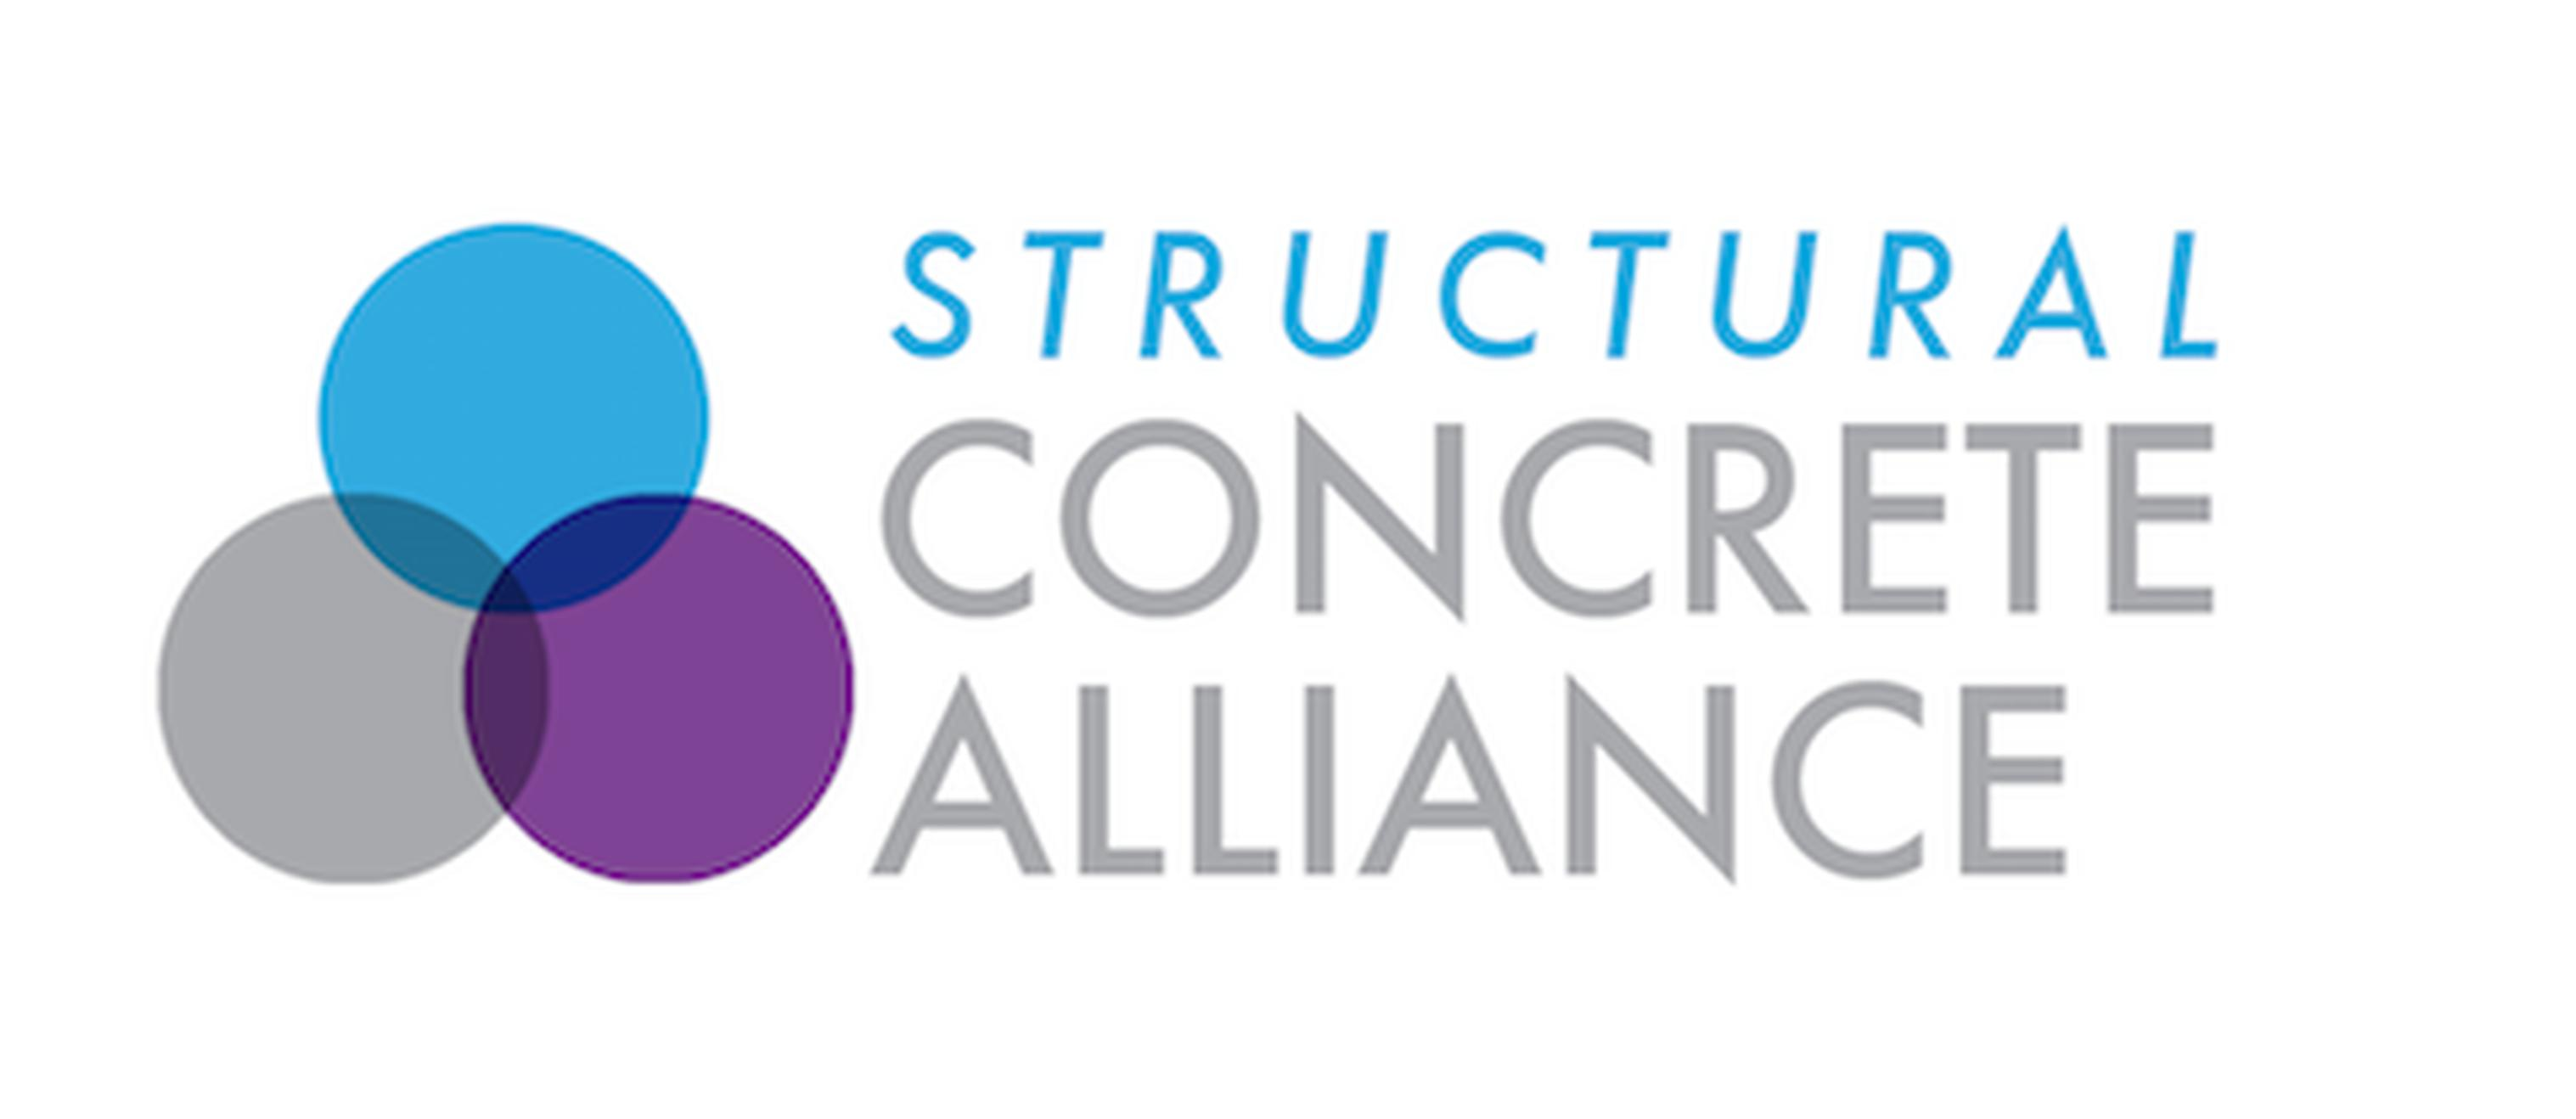 The Structural Concrete Alliance`s new logo